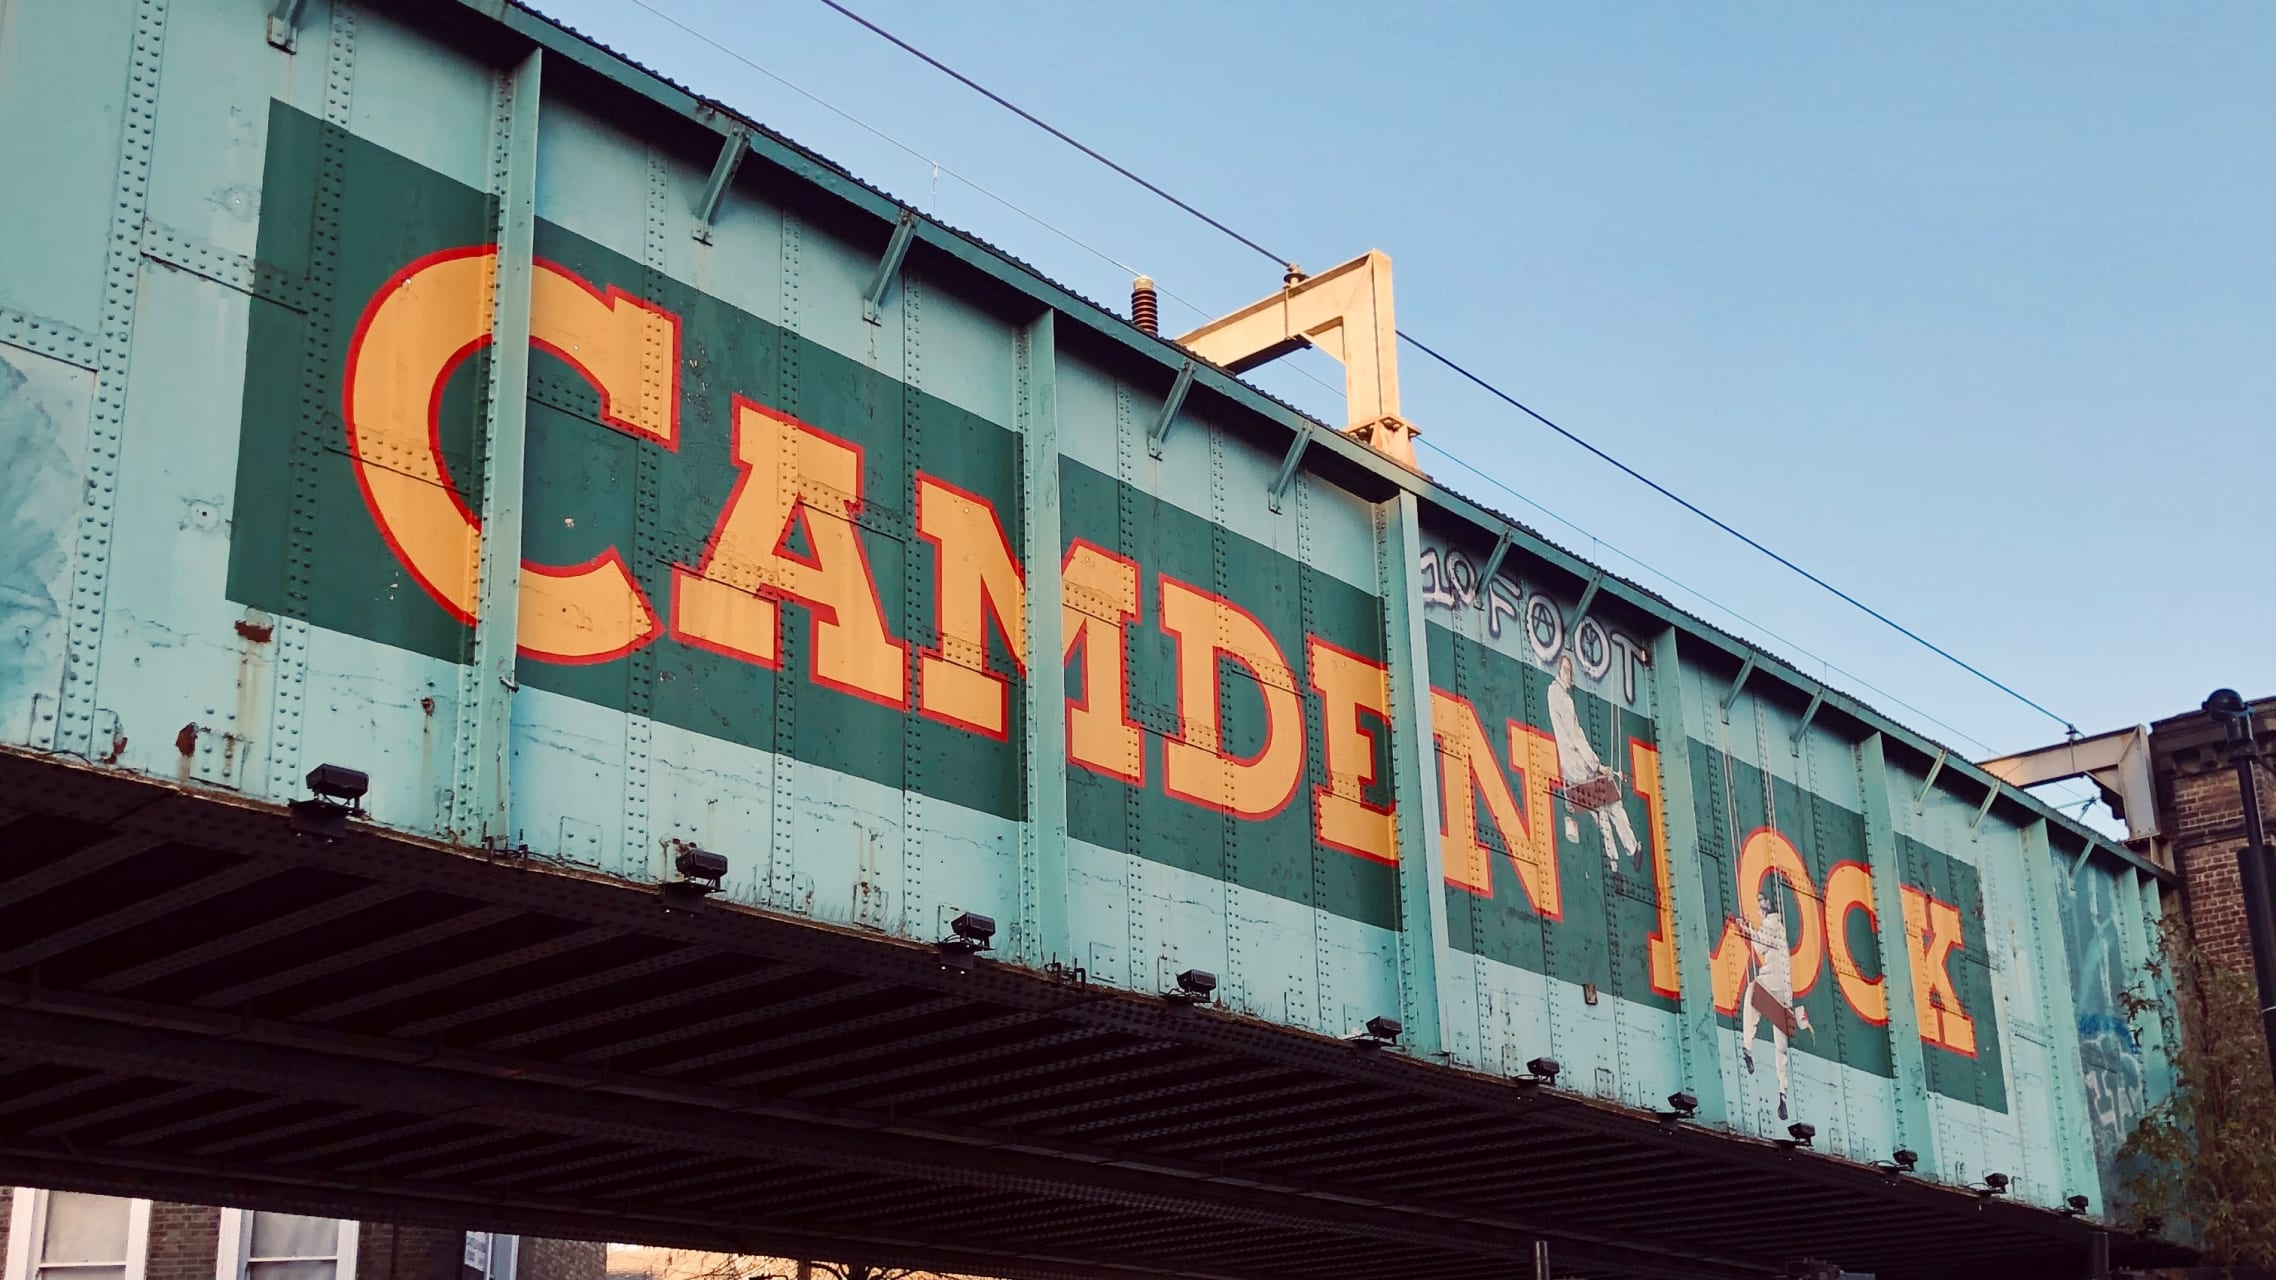 London - Camden Town: from Amy Winehouse to Punk Subculture and Graffiti War...